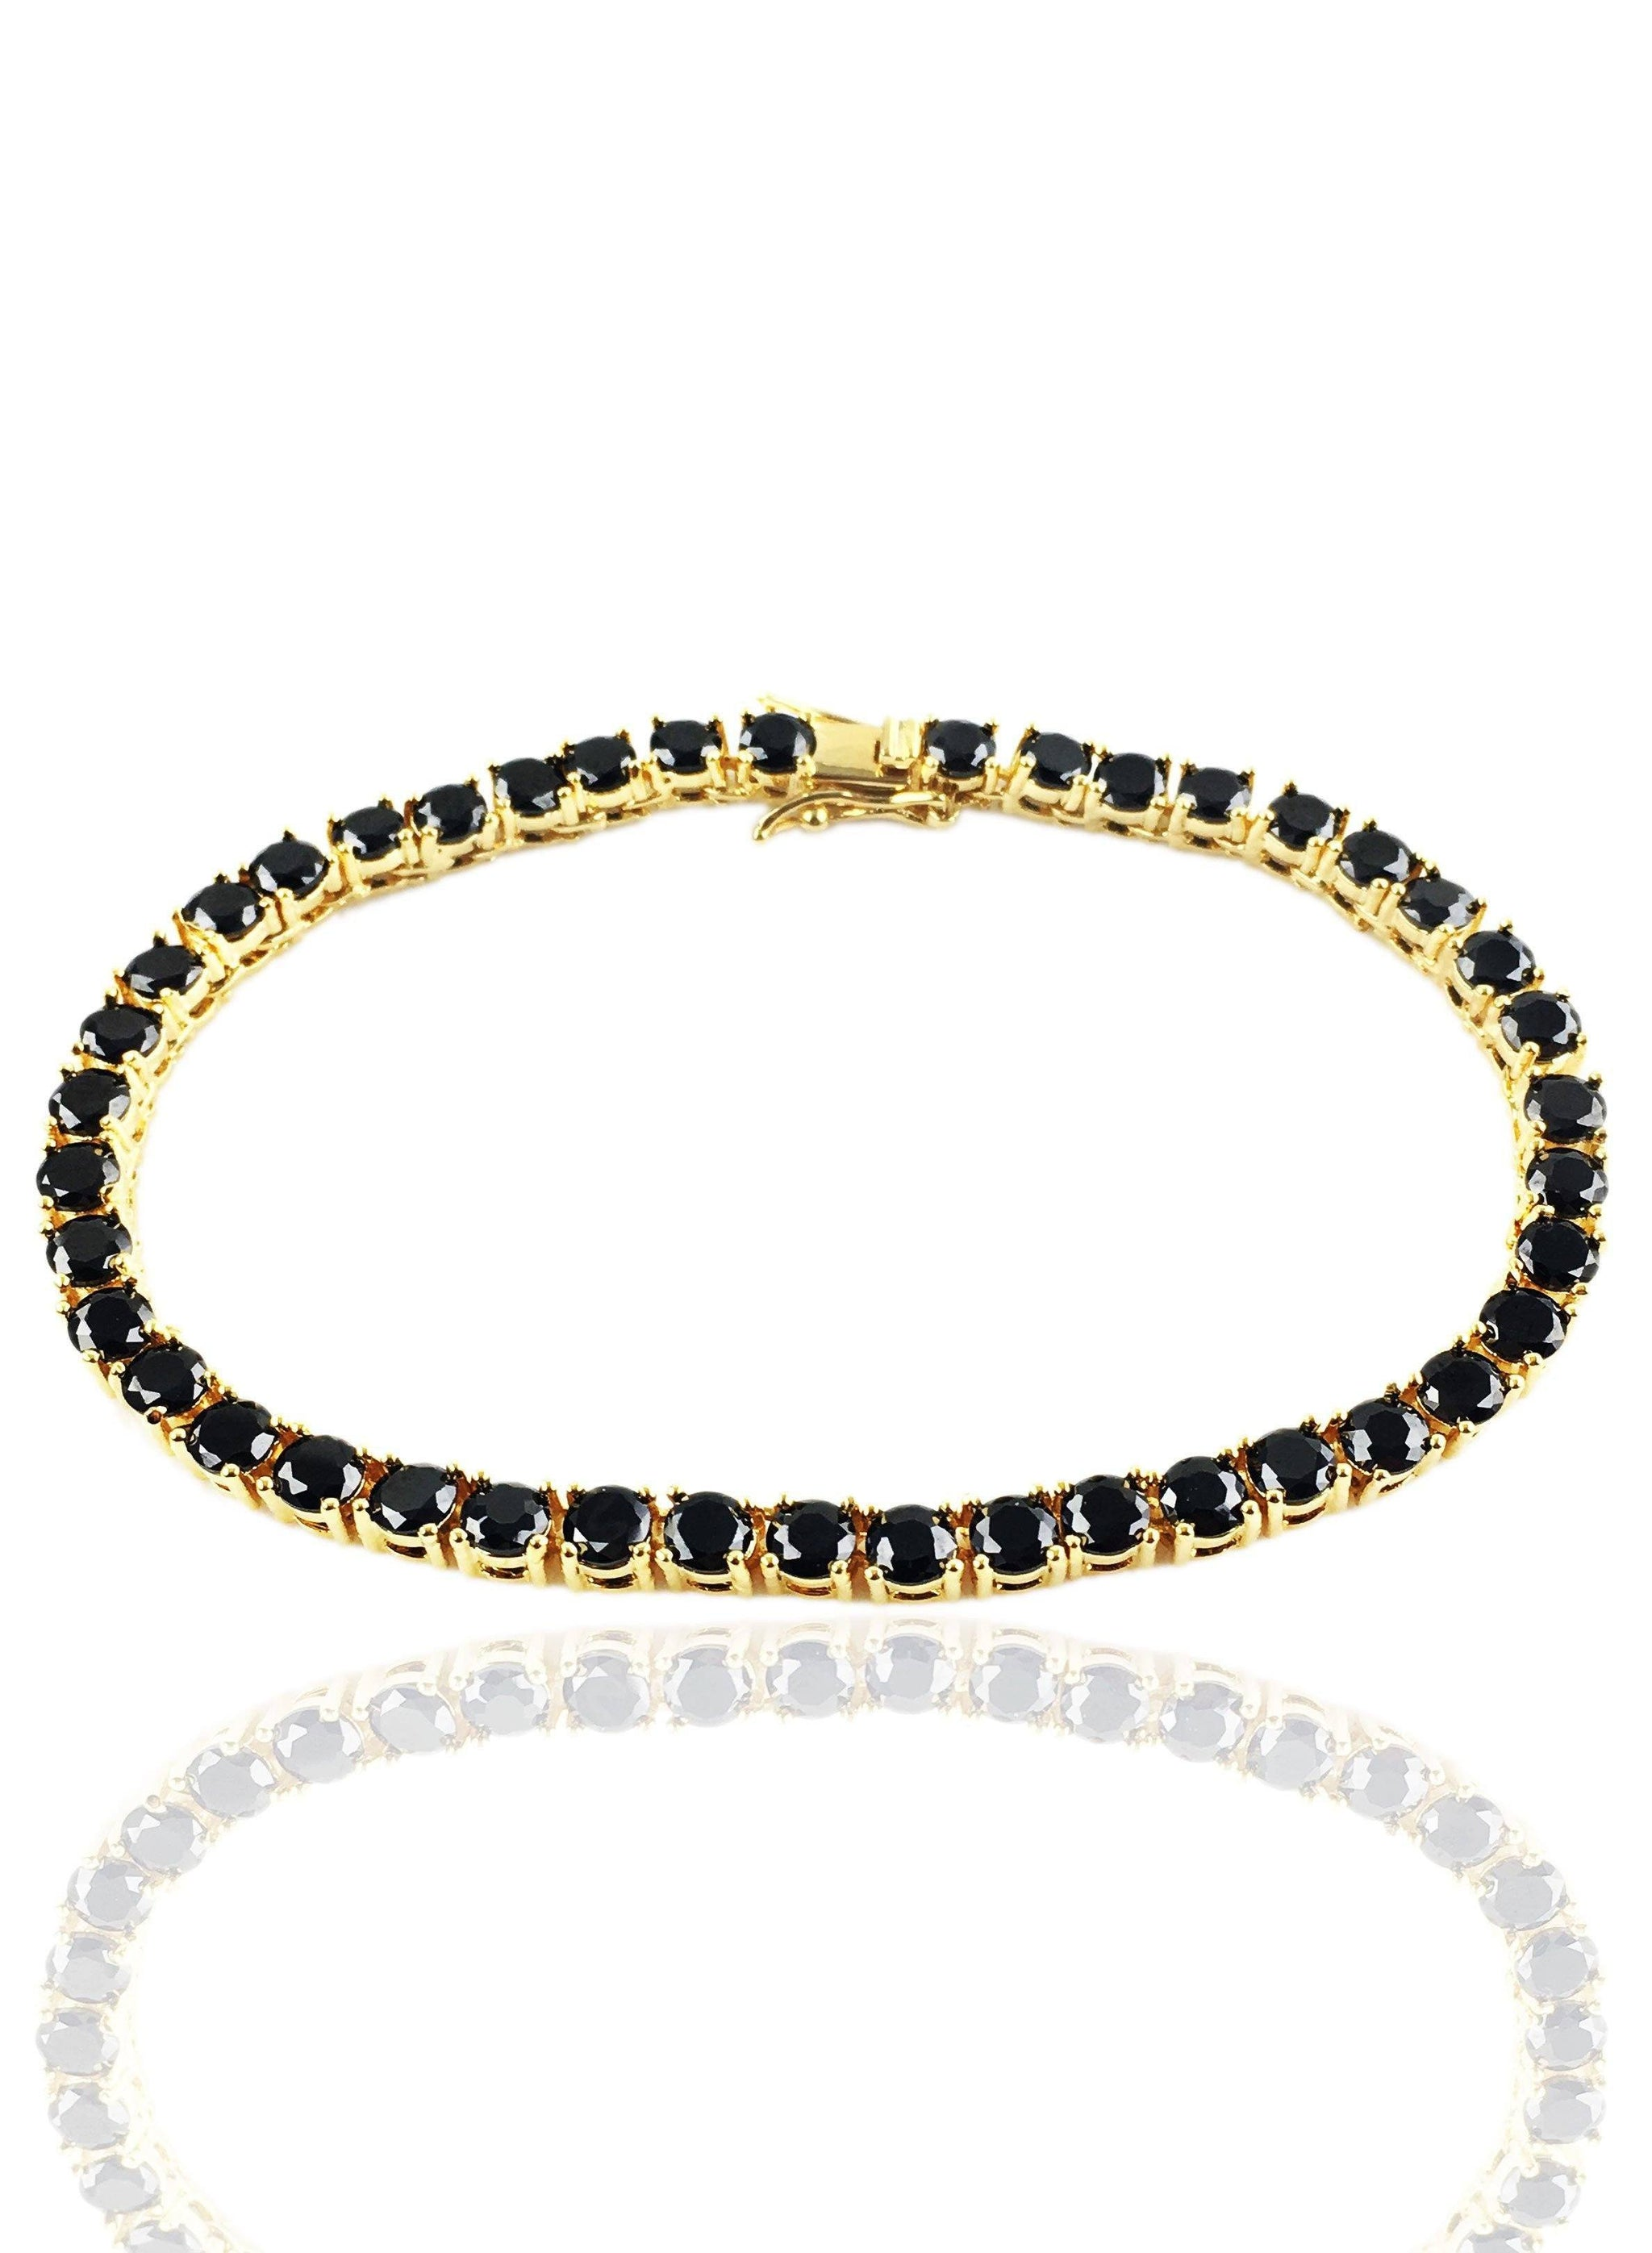 bracelet price black diamond caymancode cartier